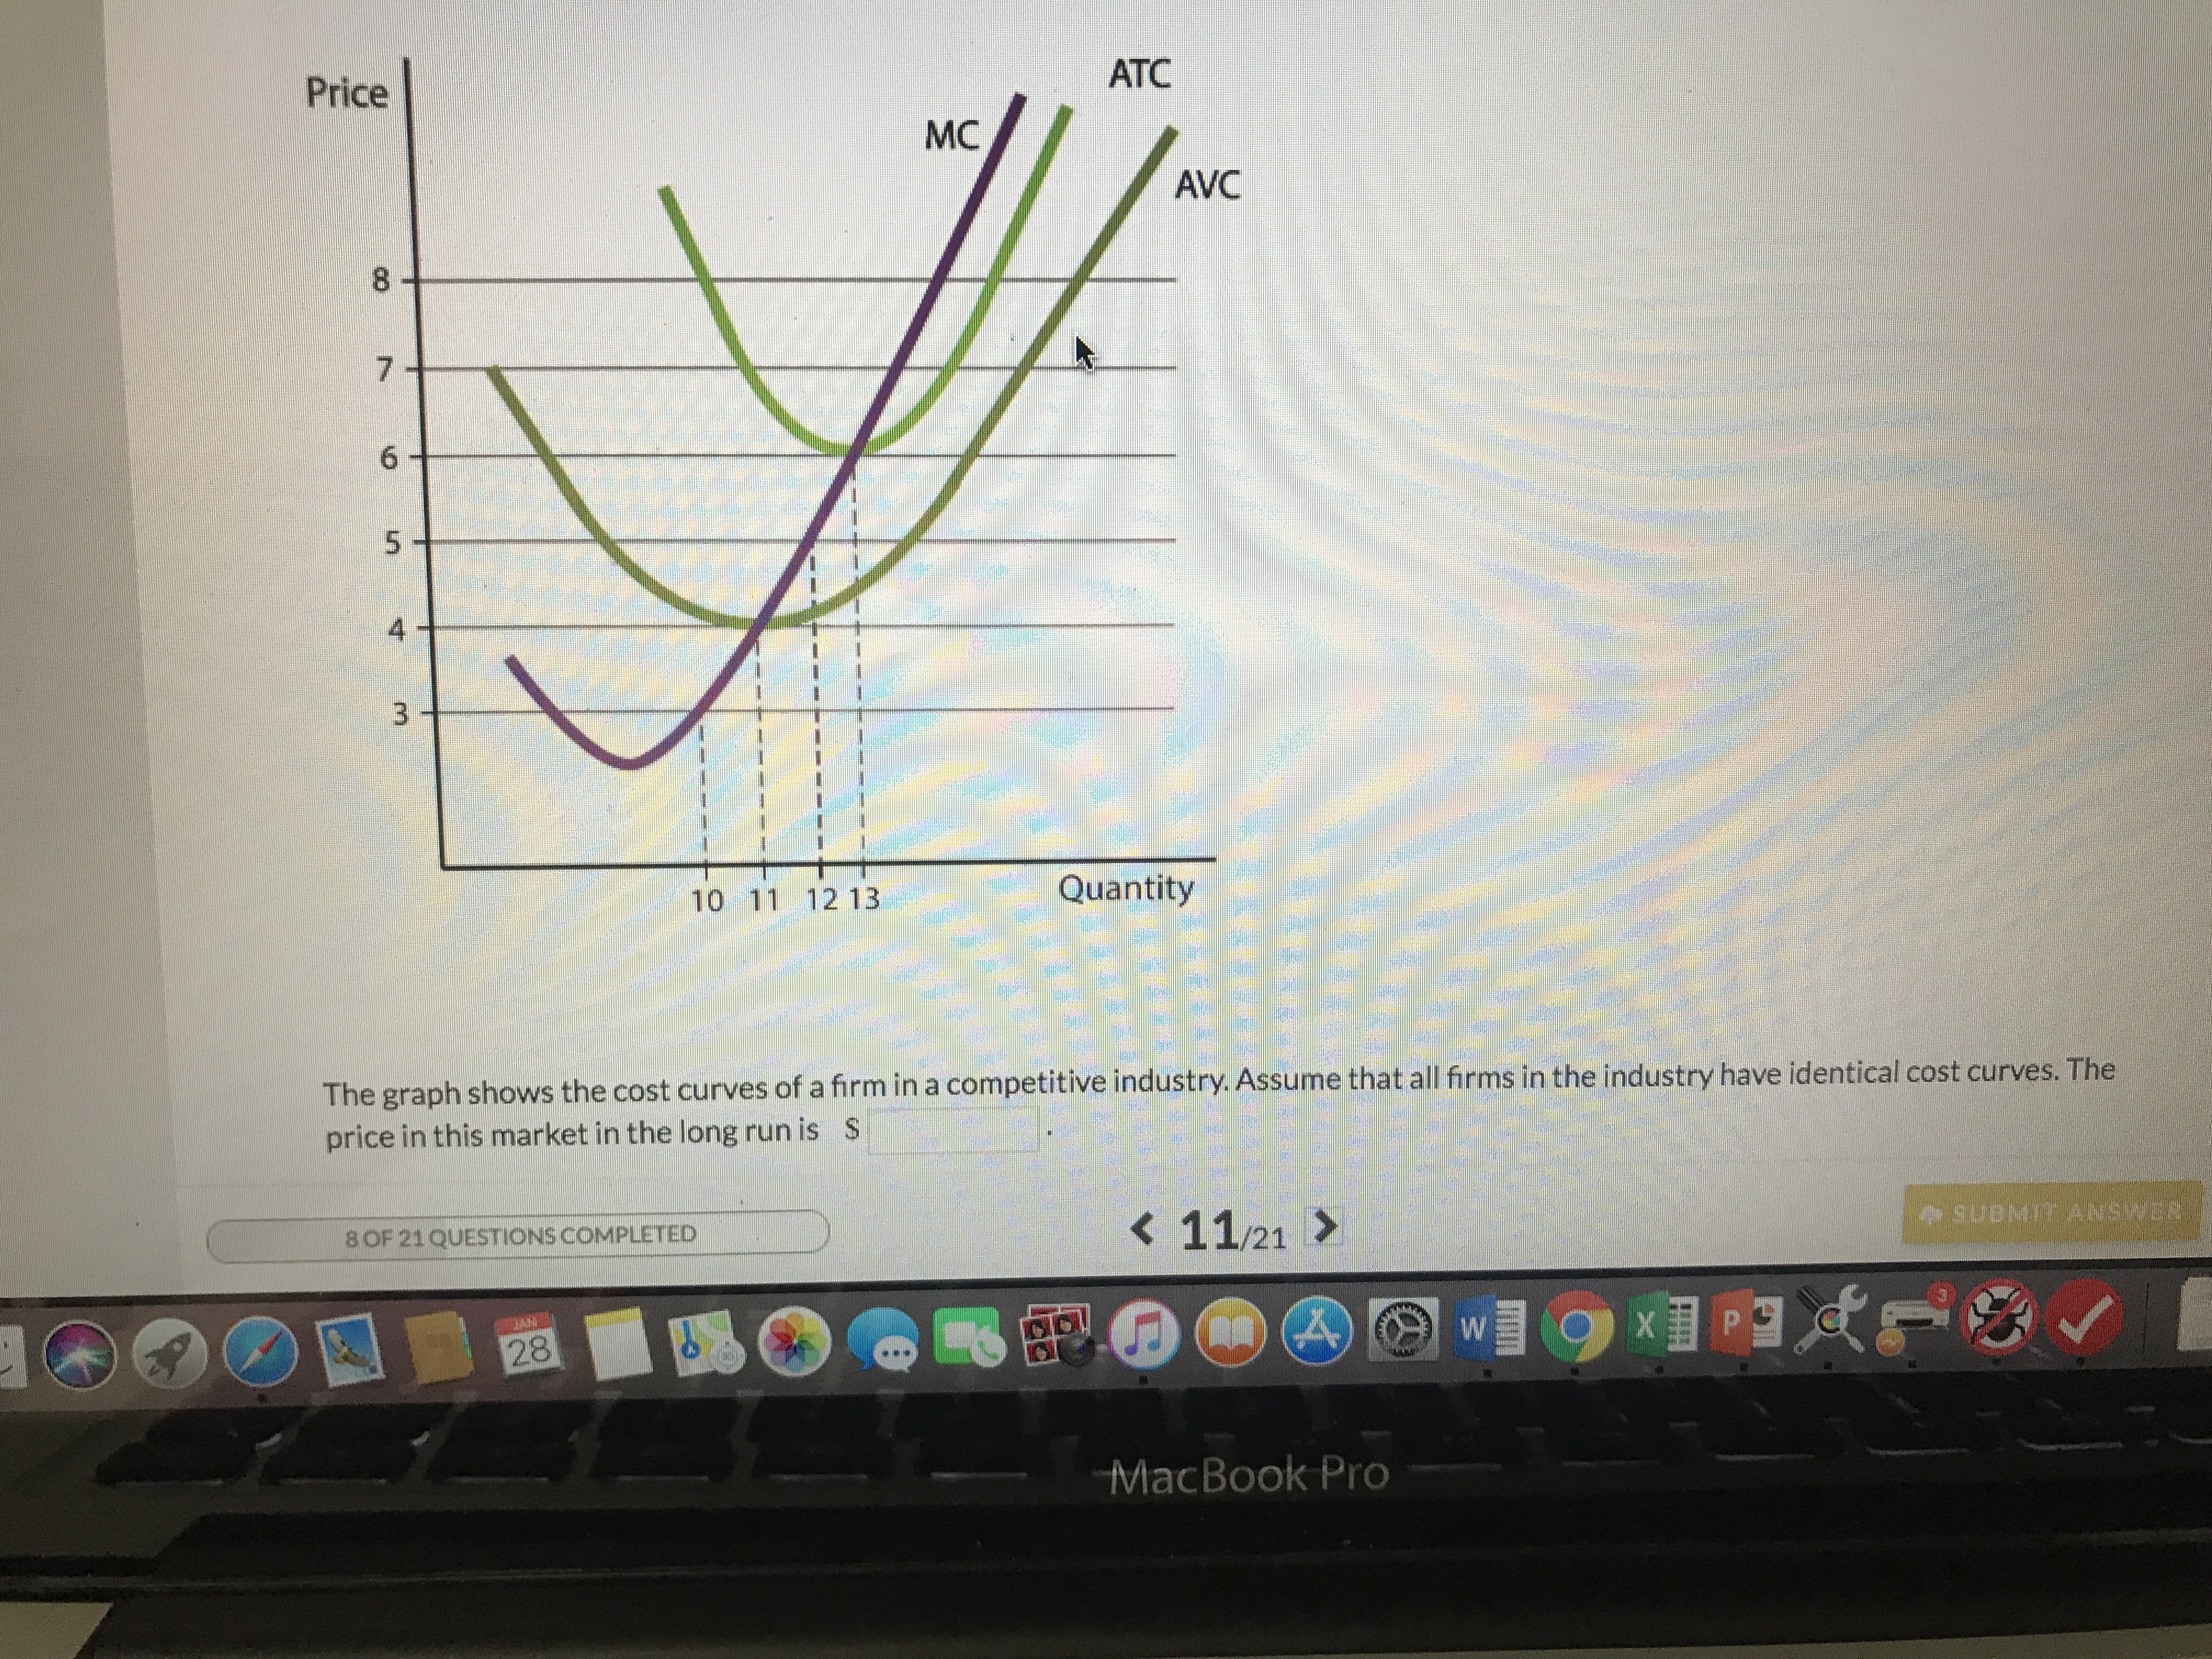 ATC Price MC AVC 8 4 10 11 12 13 Quantity The graph shows the cost curves of a firm in a competitive industry. Assume that all frms in the industry have identical cost curves. The price in this market in the long run is S K 11/21 > o SUBMIT ANSWER 8OF 21QUESTIONS COMPLETED MacBook Pro